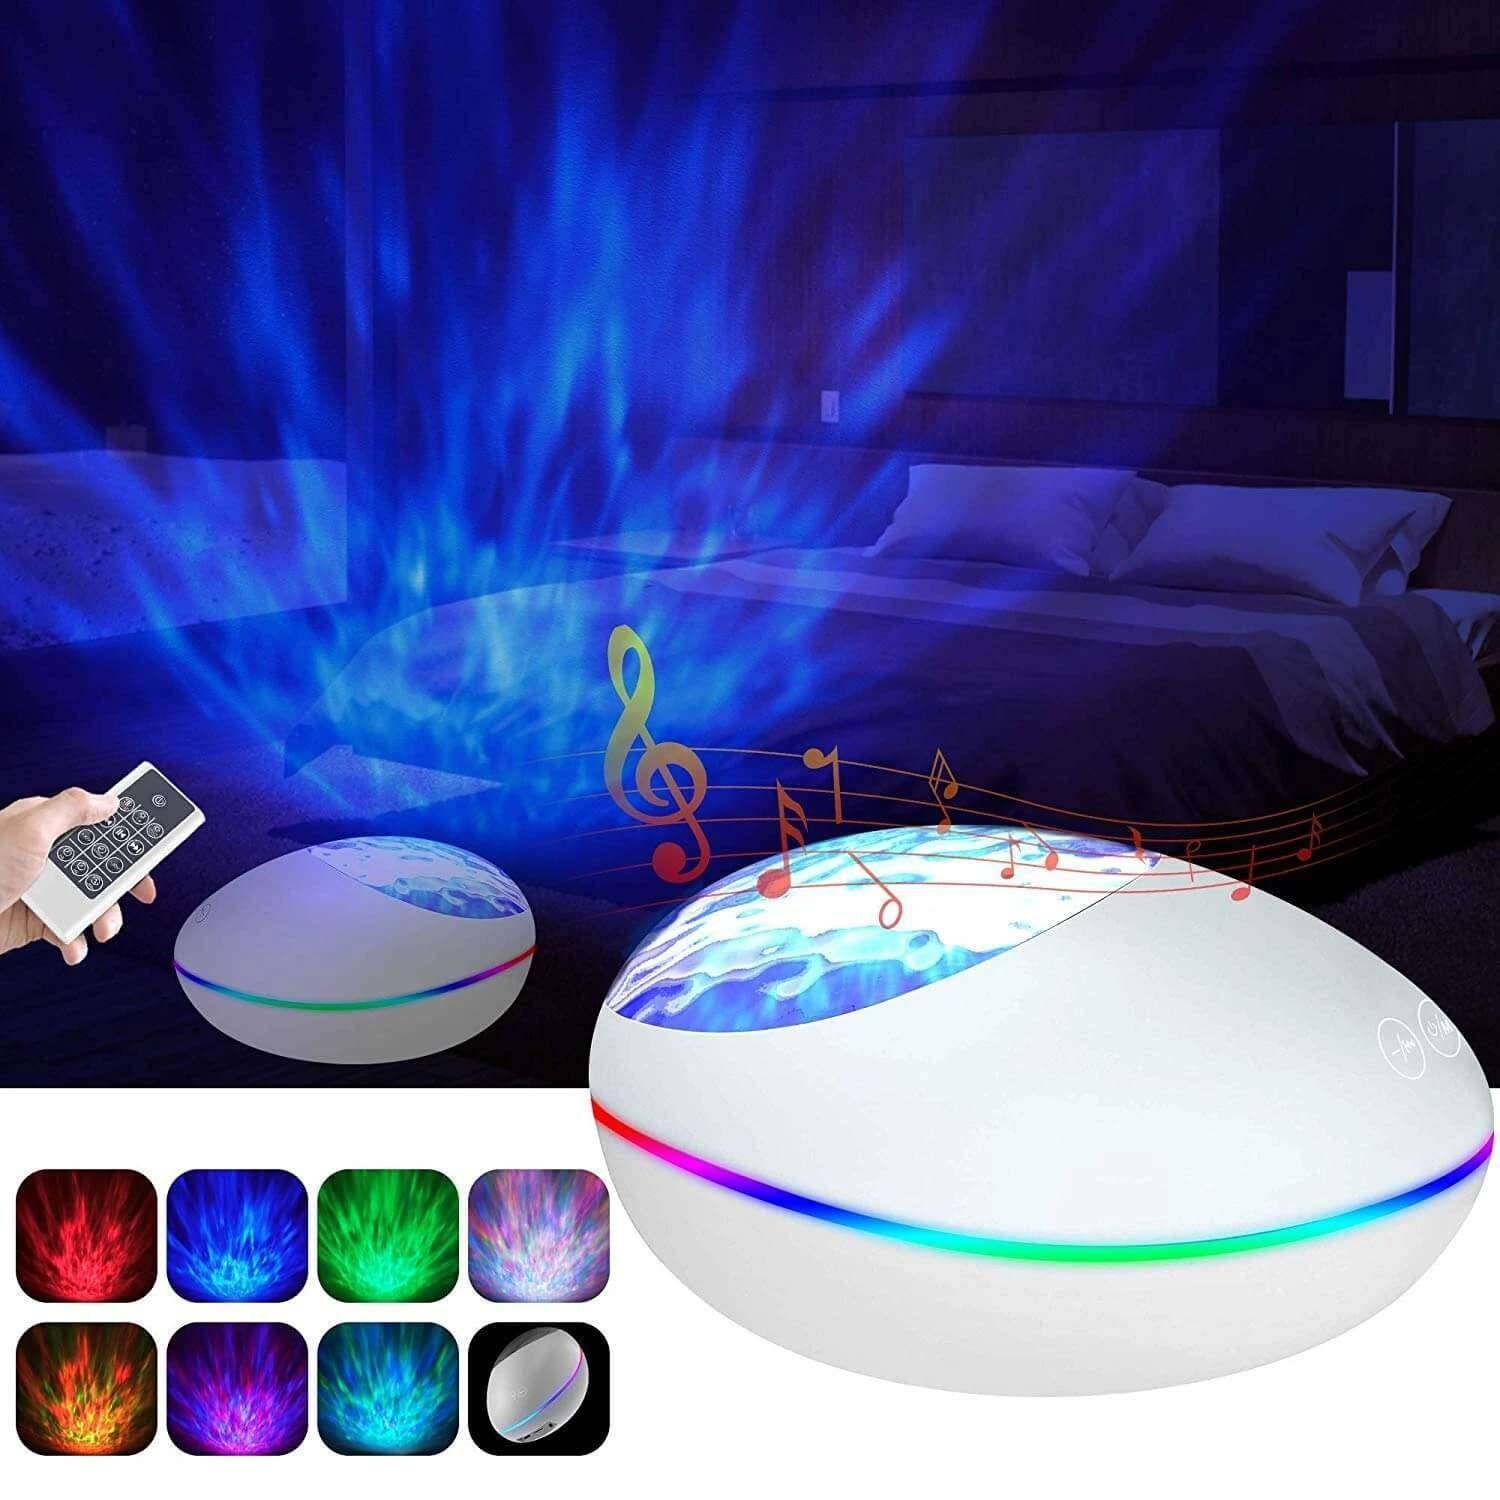 Elecstars Store Ocean Wave Projector Bluetooth Music Speaker Voice Control for Bedroom Toddler Nighttime Sleep Aids